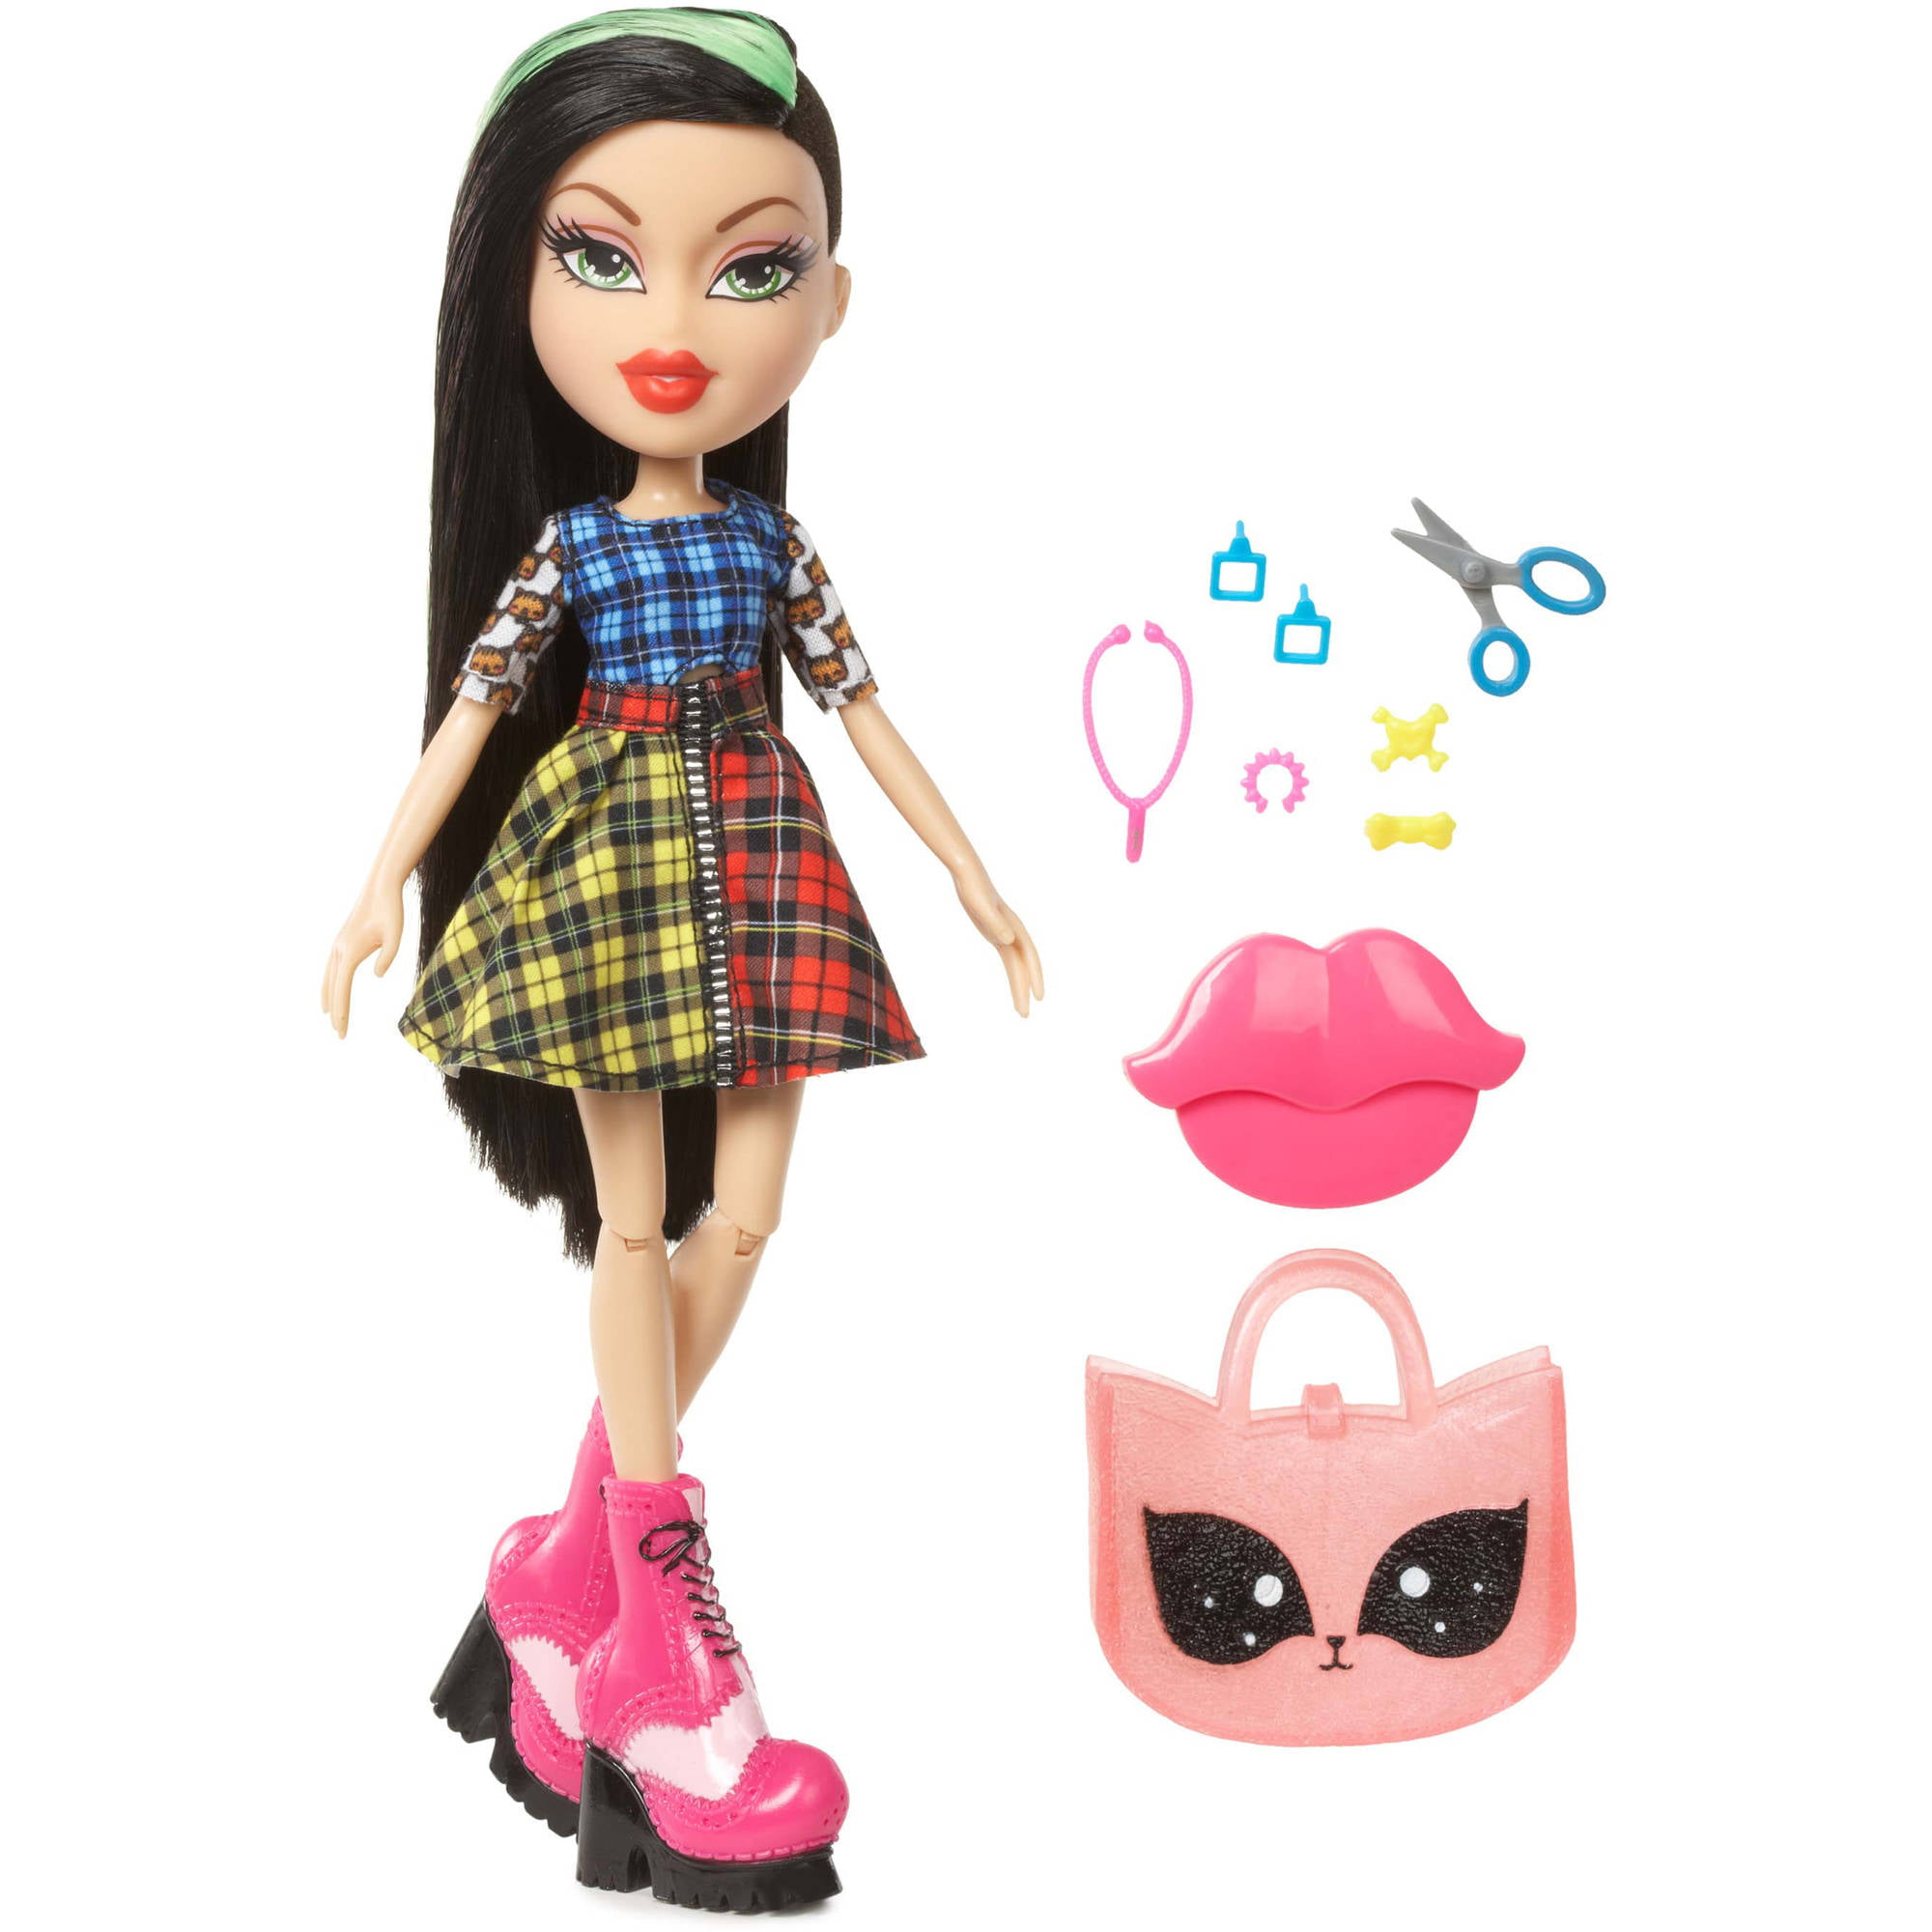 Bratz Hello My Name Is Doll, Jade by MGA Entertainment